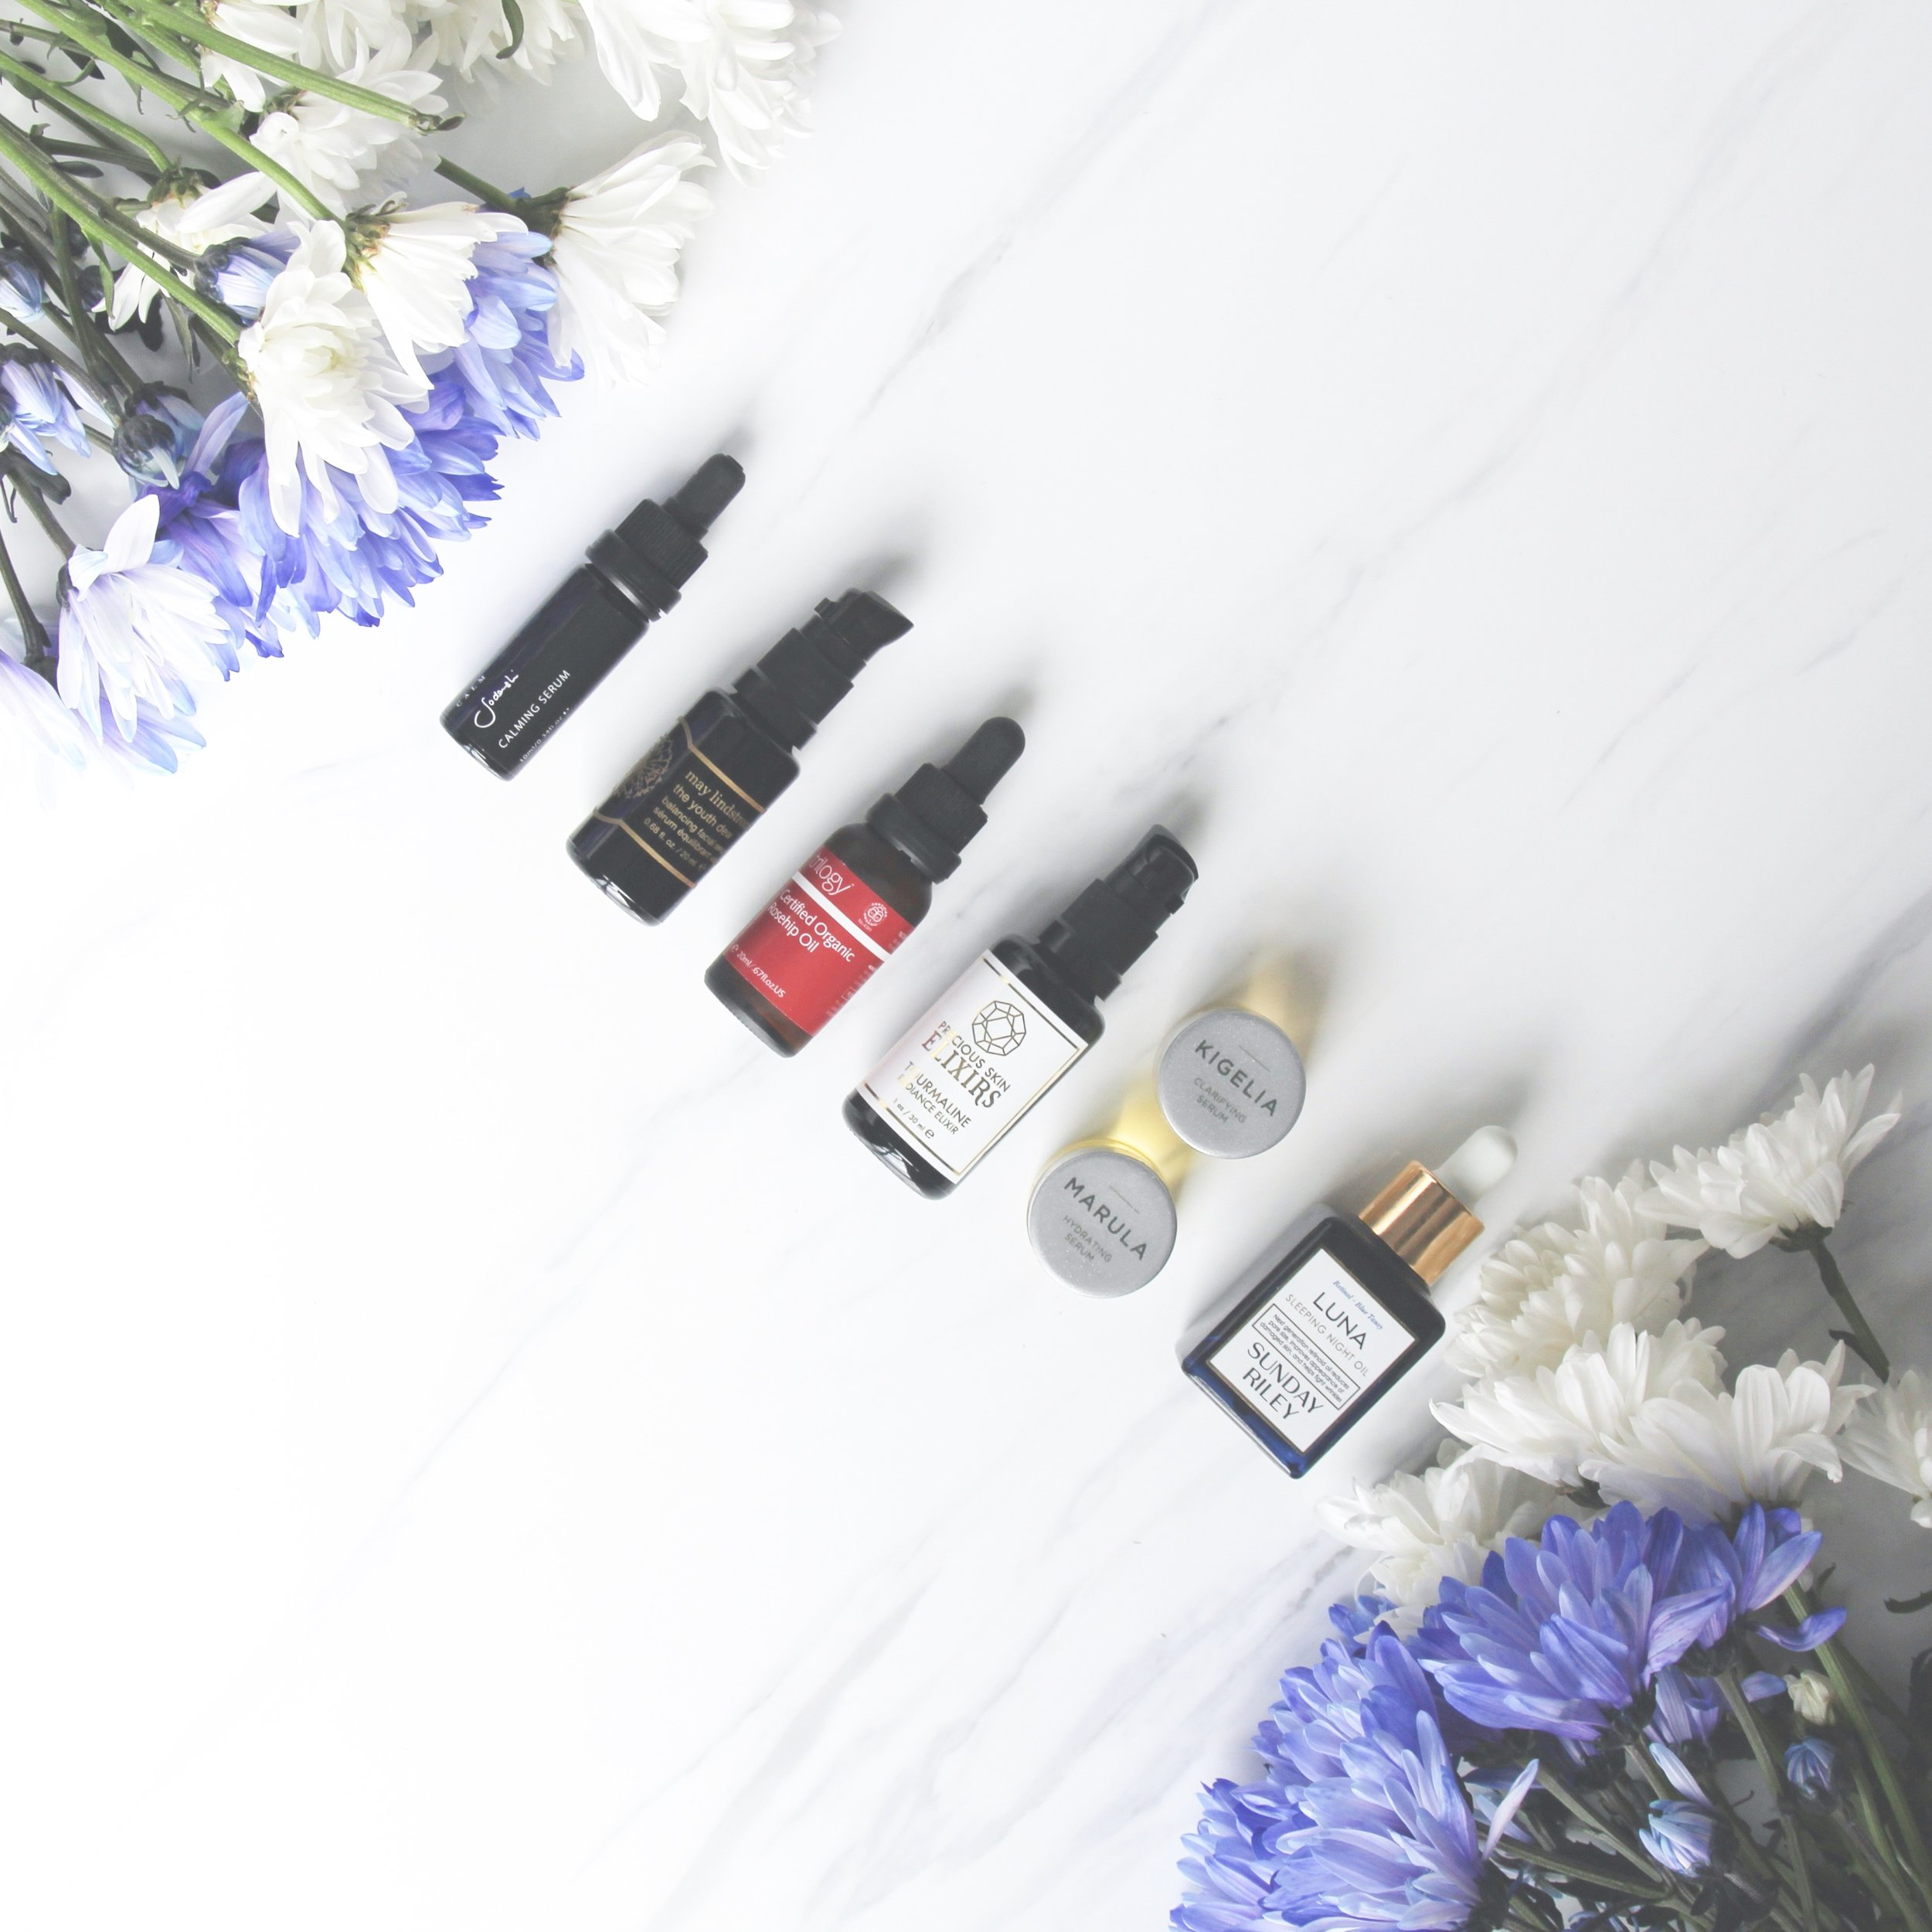 A small selection of my facial oil collection.